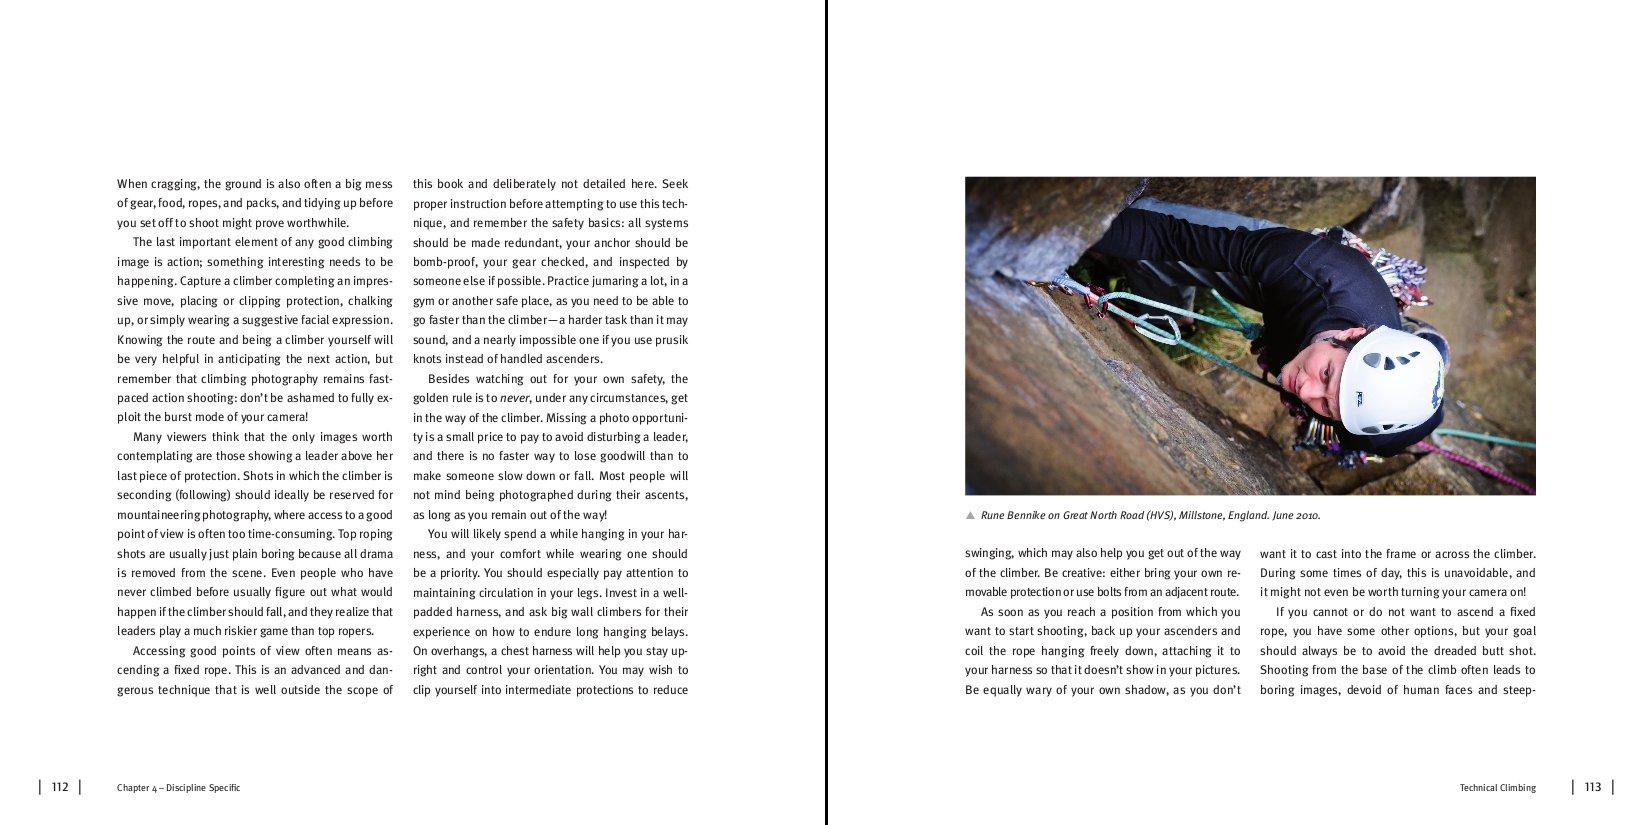 Sample pages of Remote Exposure, 207 kb